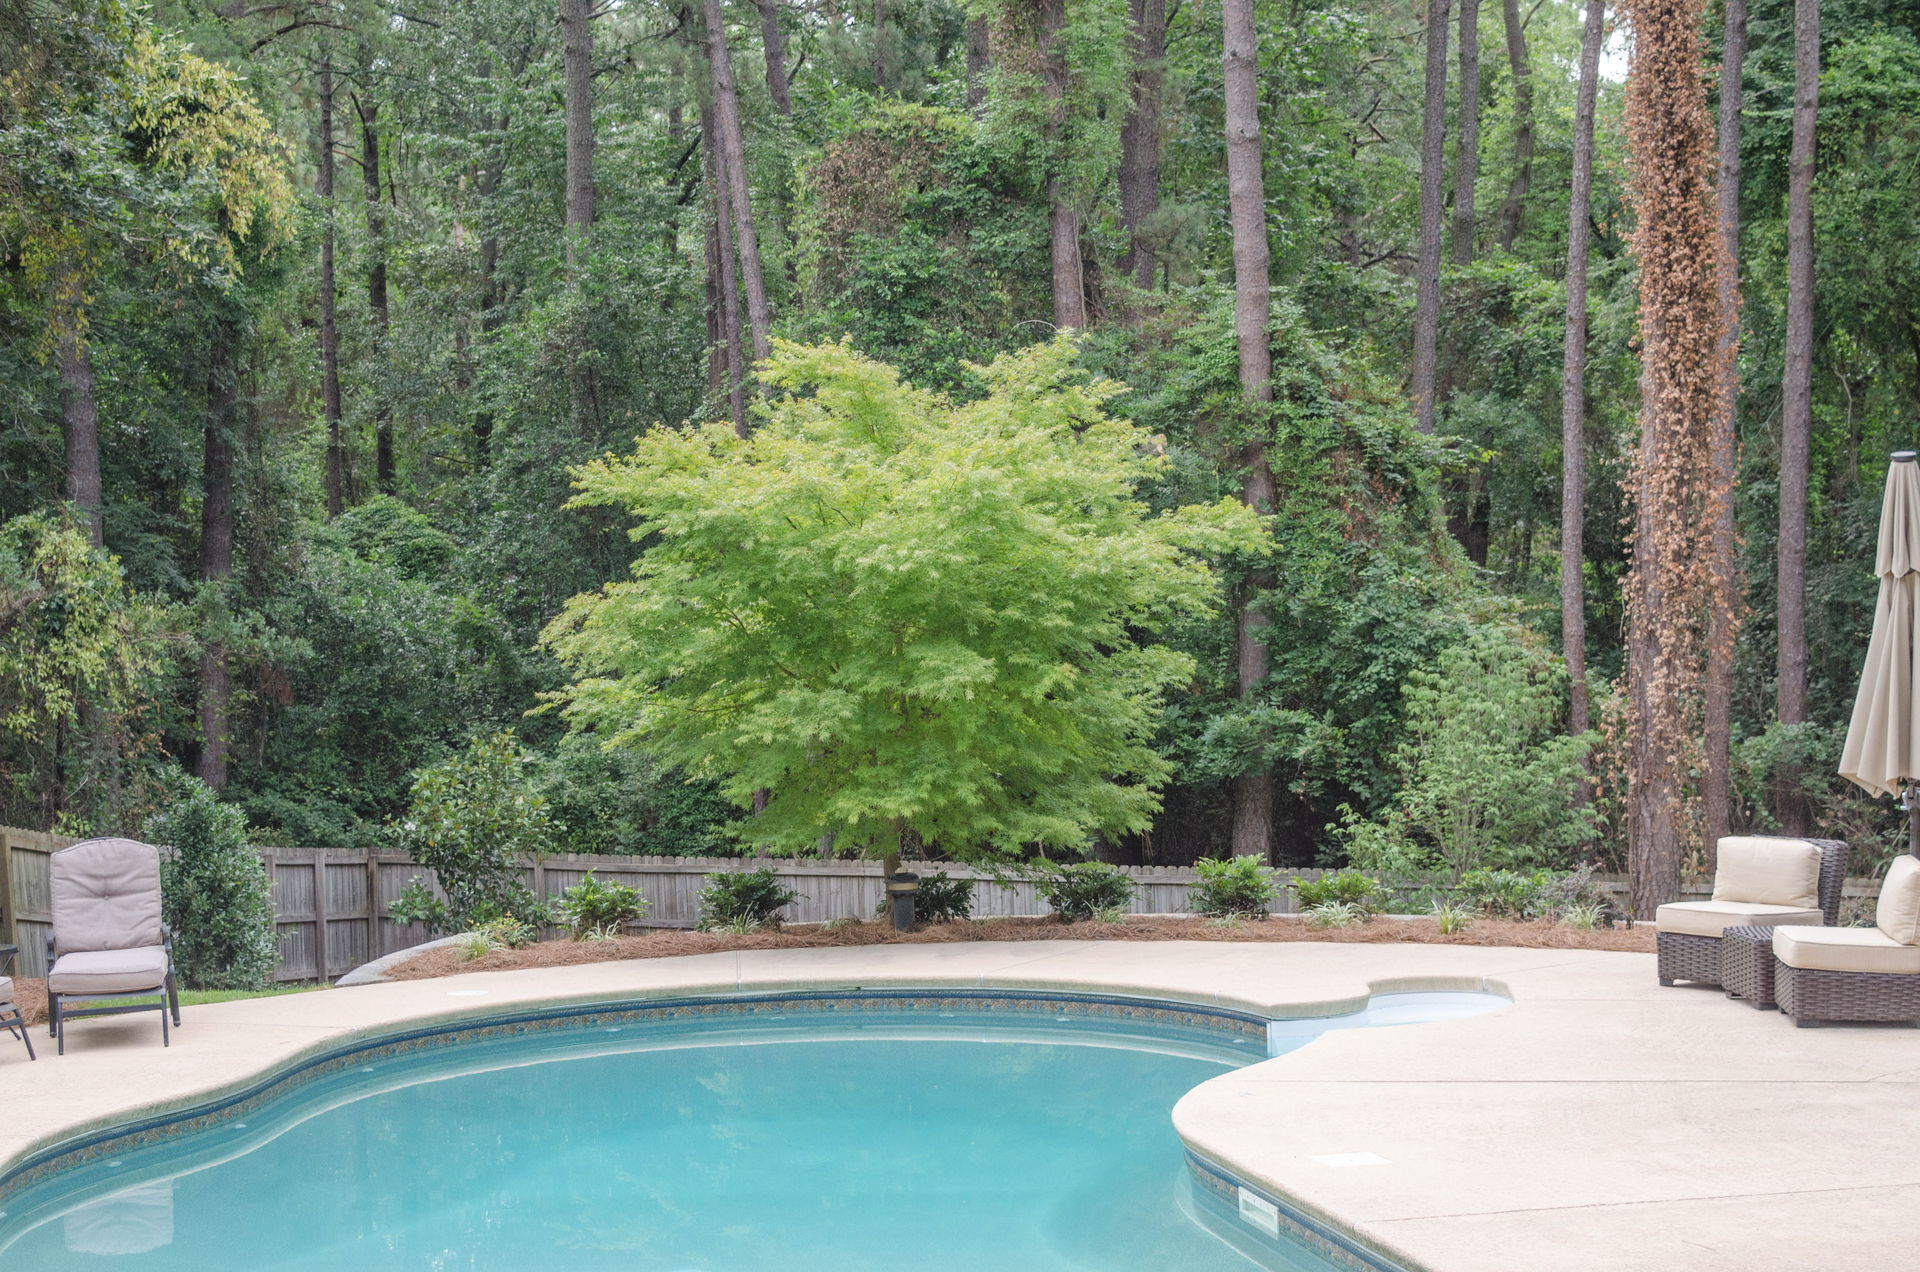 Dalzell Design Landscaping 175 Sweetwater Rd, North Augusta, SC 29860 (803) 335-5028